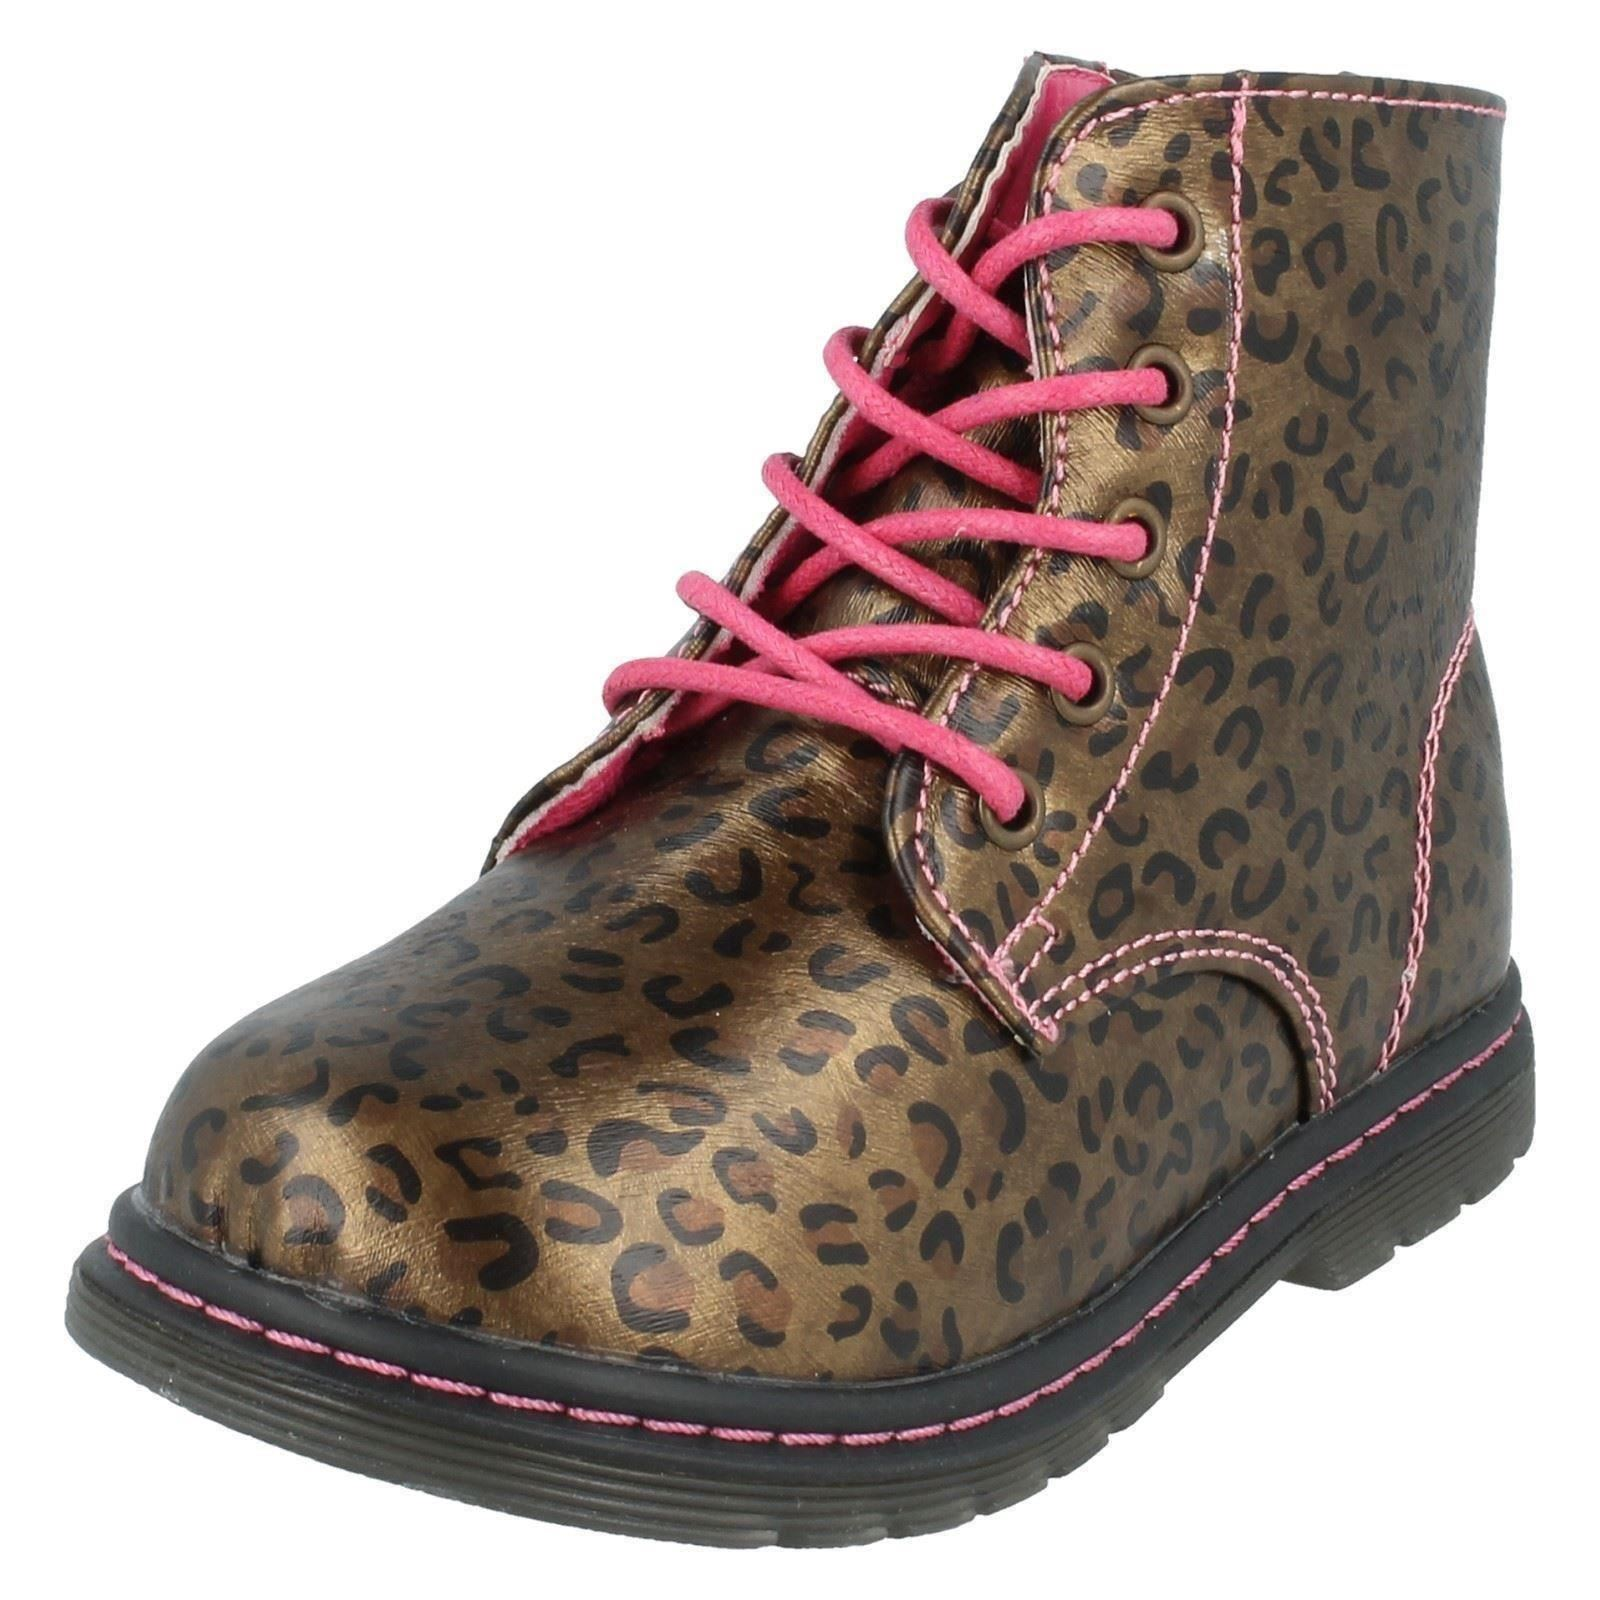 Girls Spot On Ankle Boots Infant Label H4109